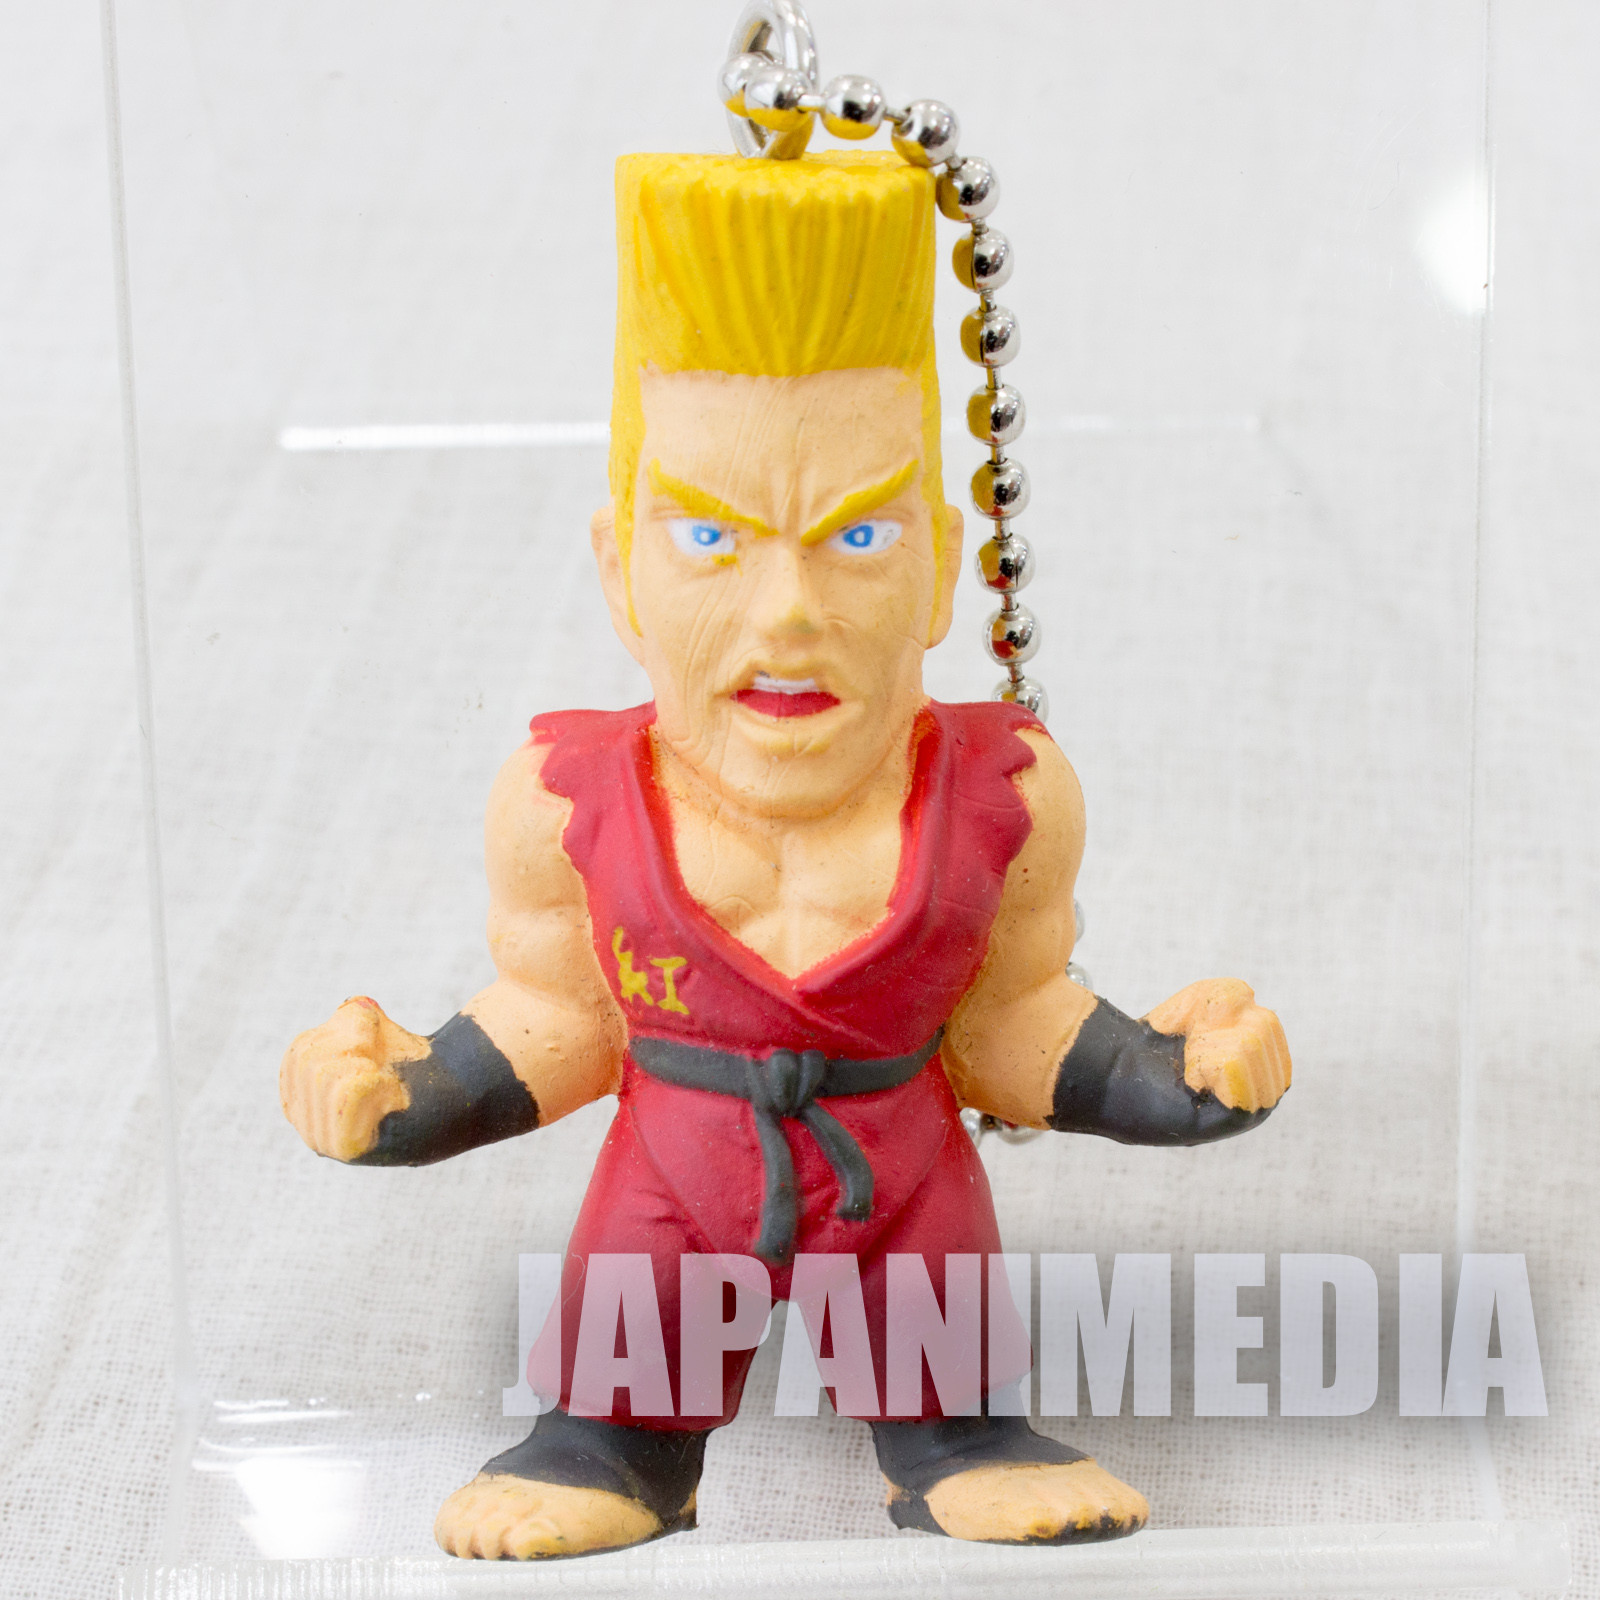 Retro RARE! Tekken Paul Phoenix Figure Keychain Namco JAPAN GAME